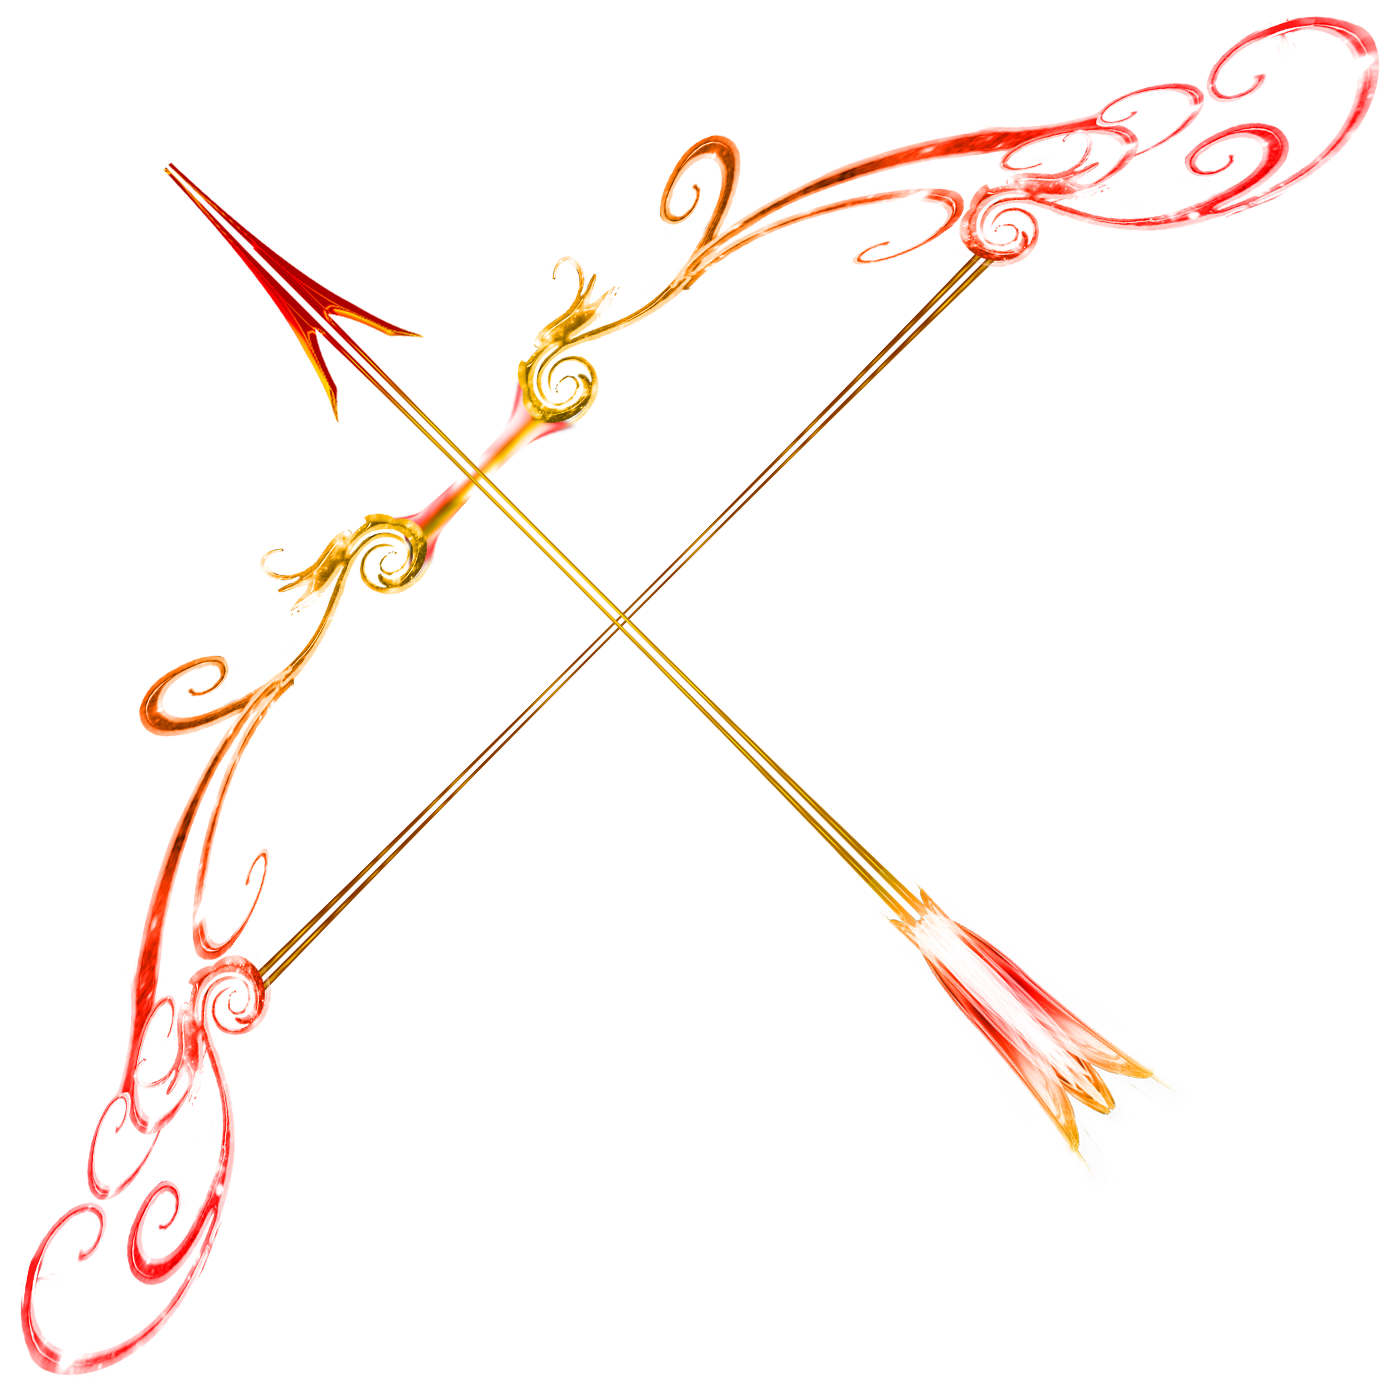 vector royalty free library Would like this as. Hunting arrow clipart